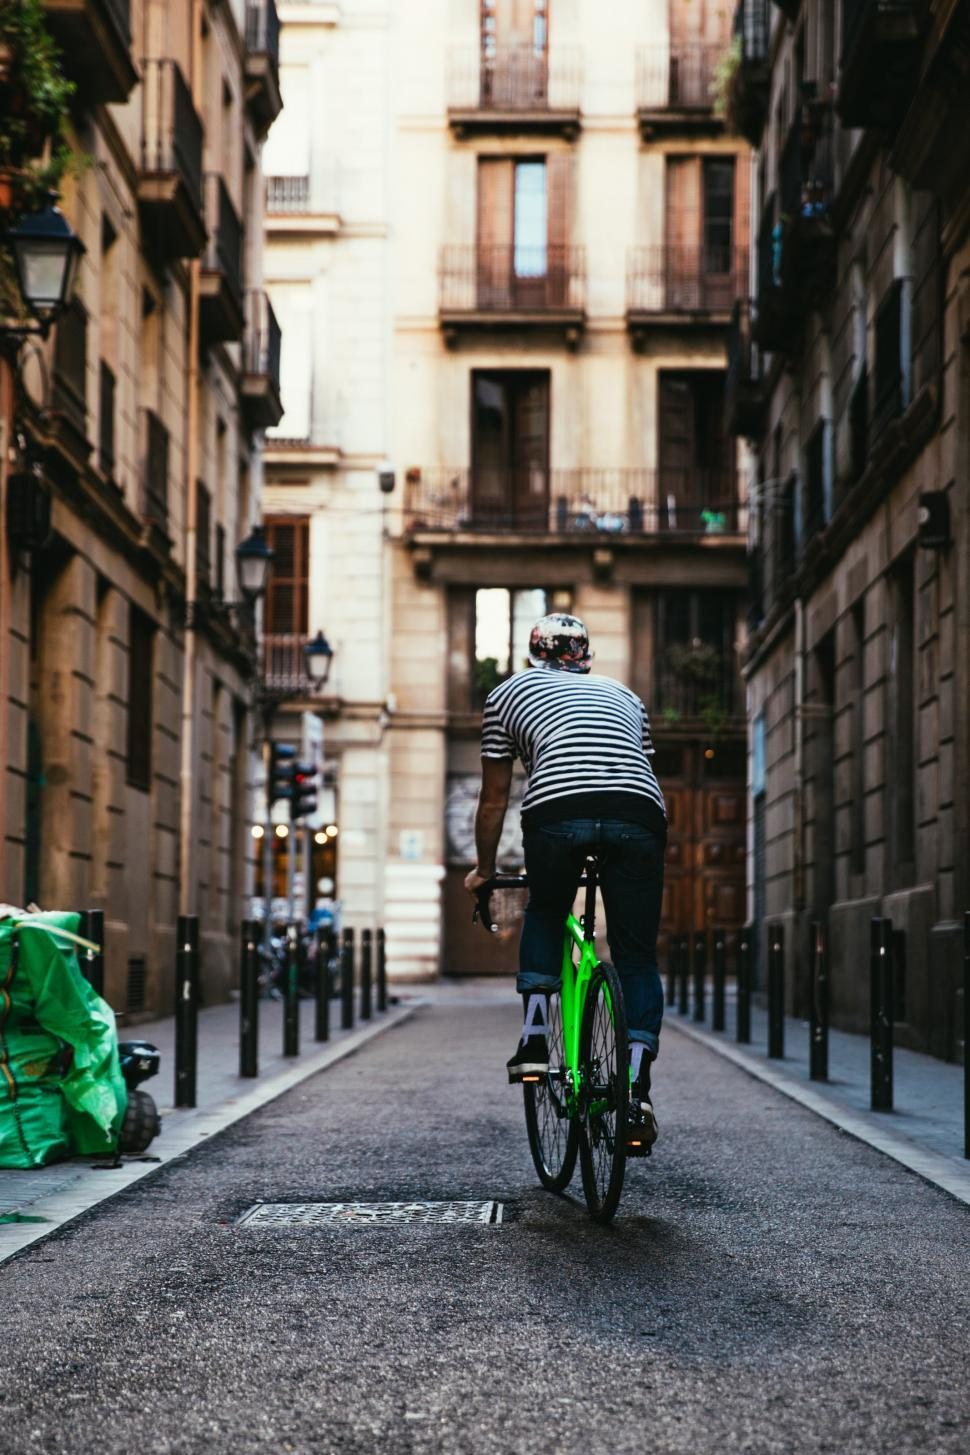 Download Free Stock HD Photo of Rear view of a biker riding a green bicycle Online